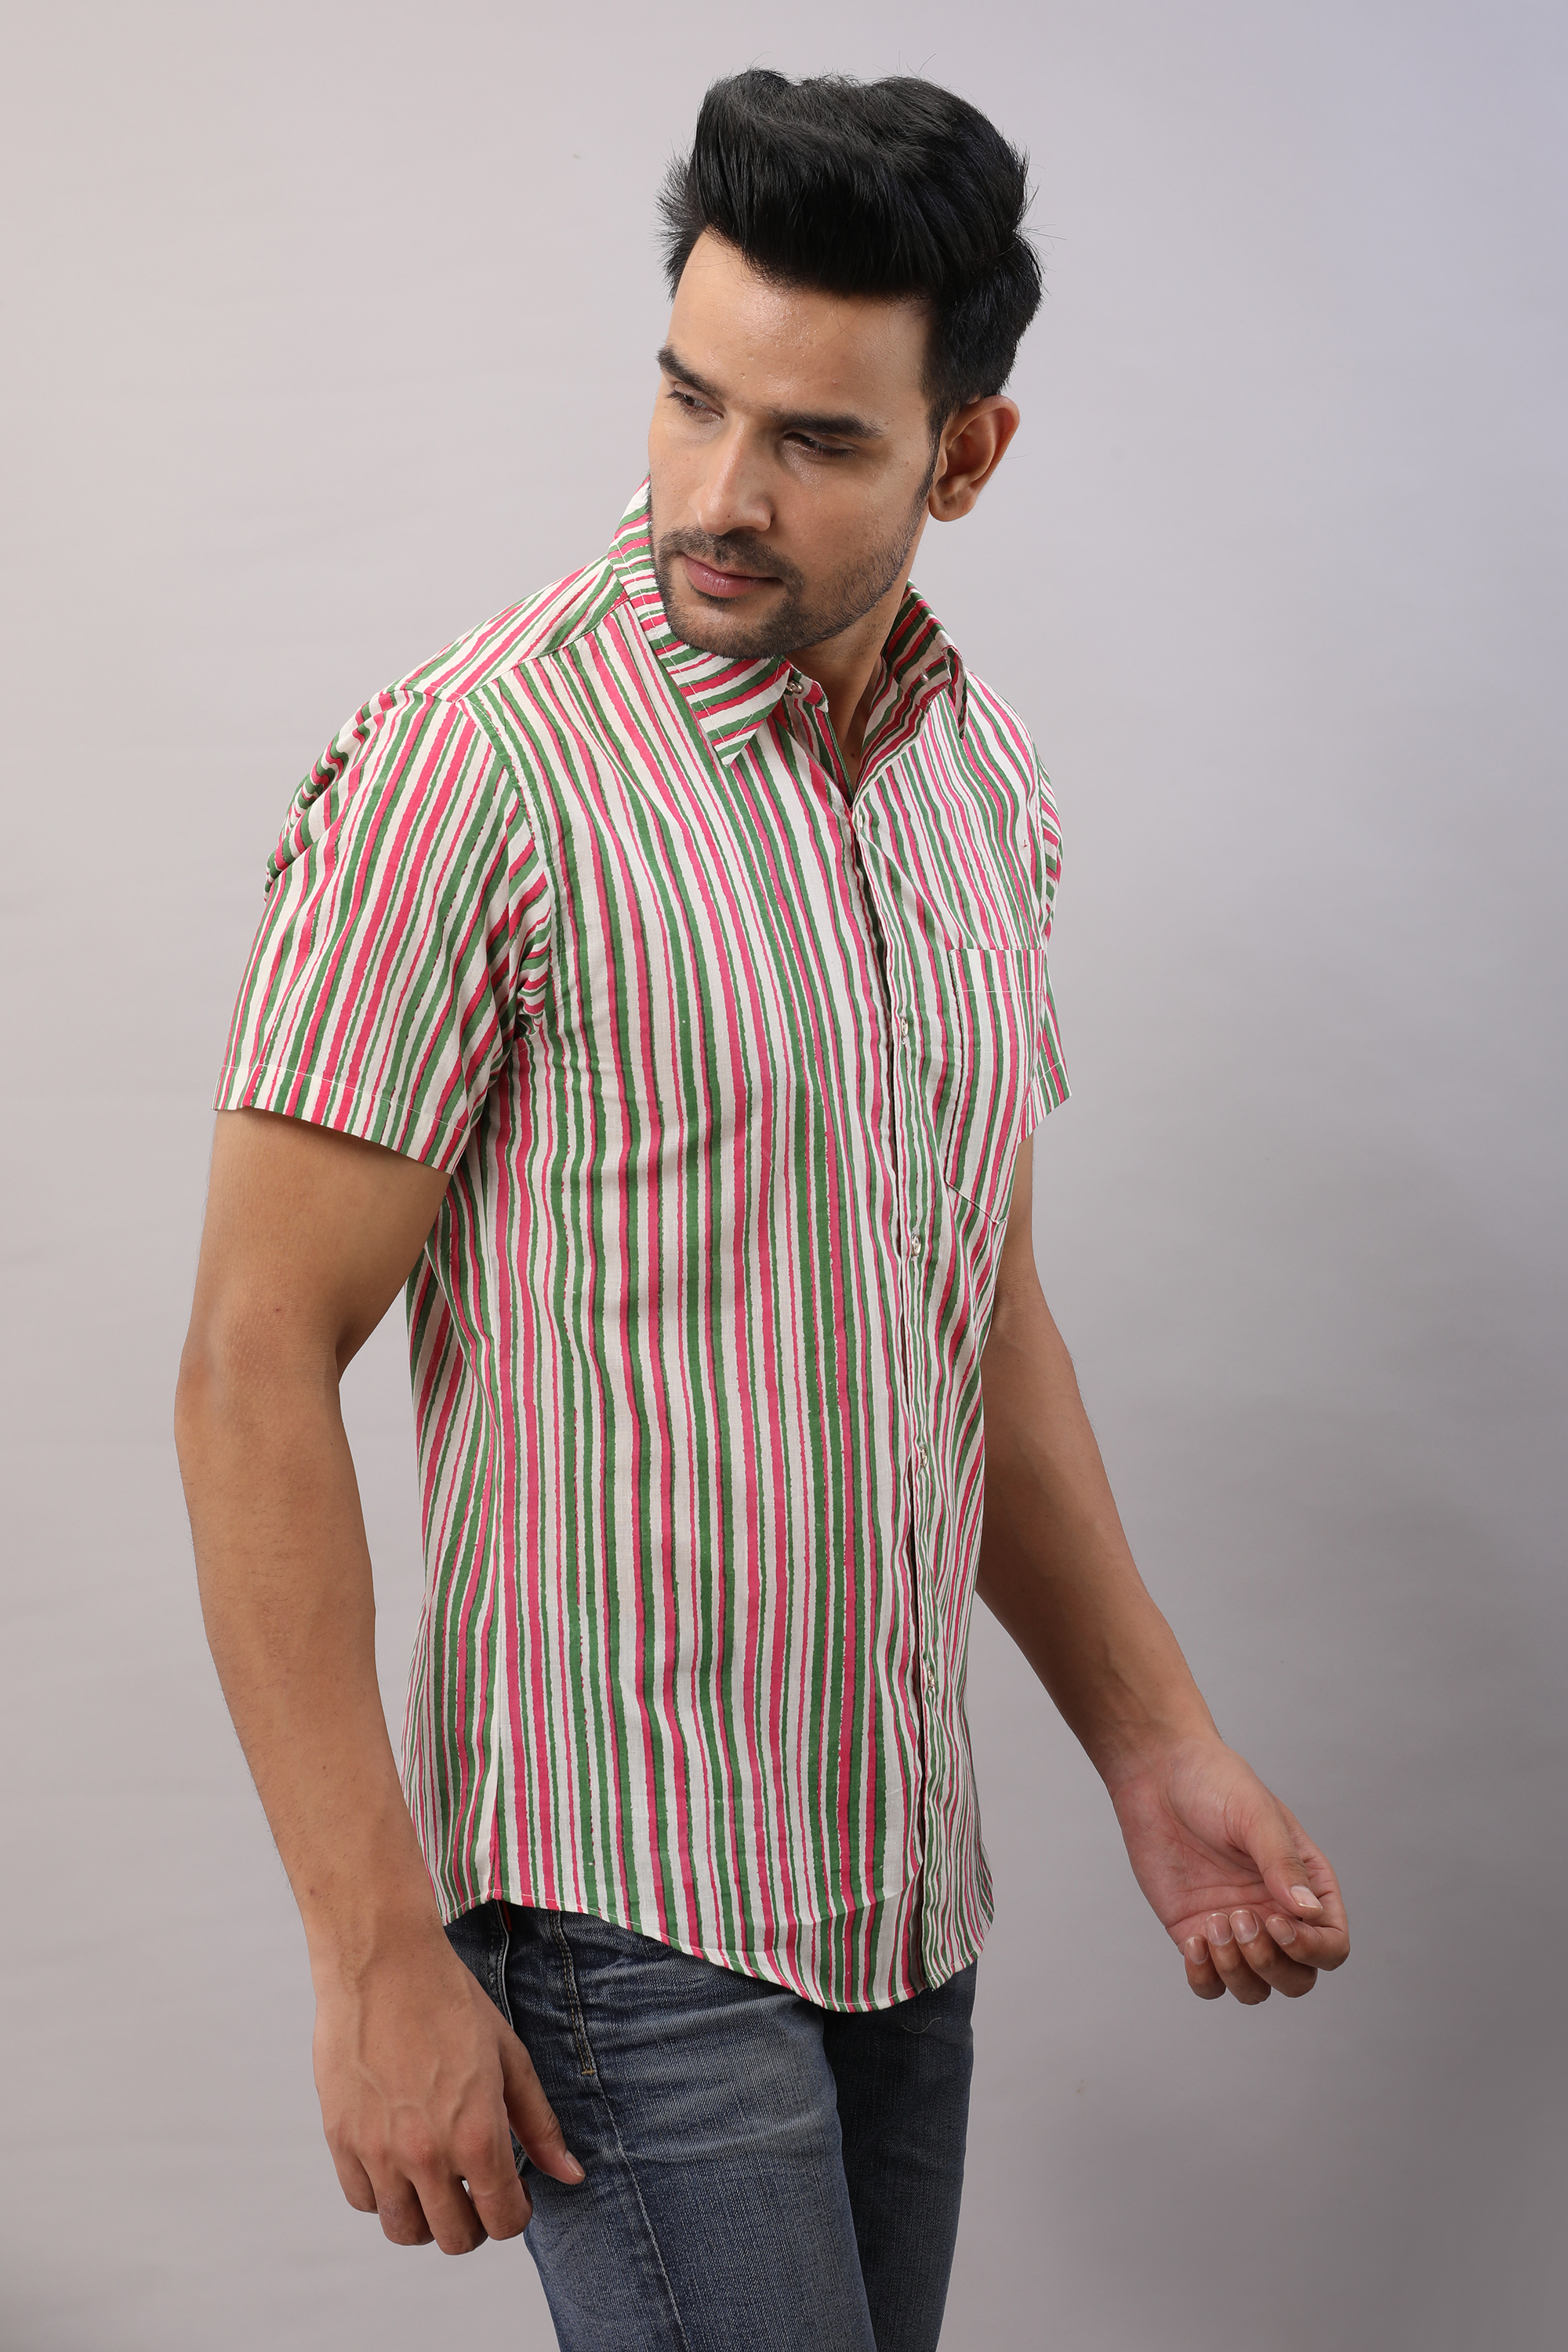 FrionKandy Cotton Striped Casual Multicolored Regular Shirt For Men - L